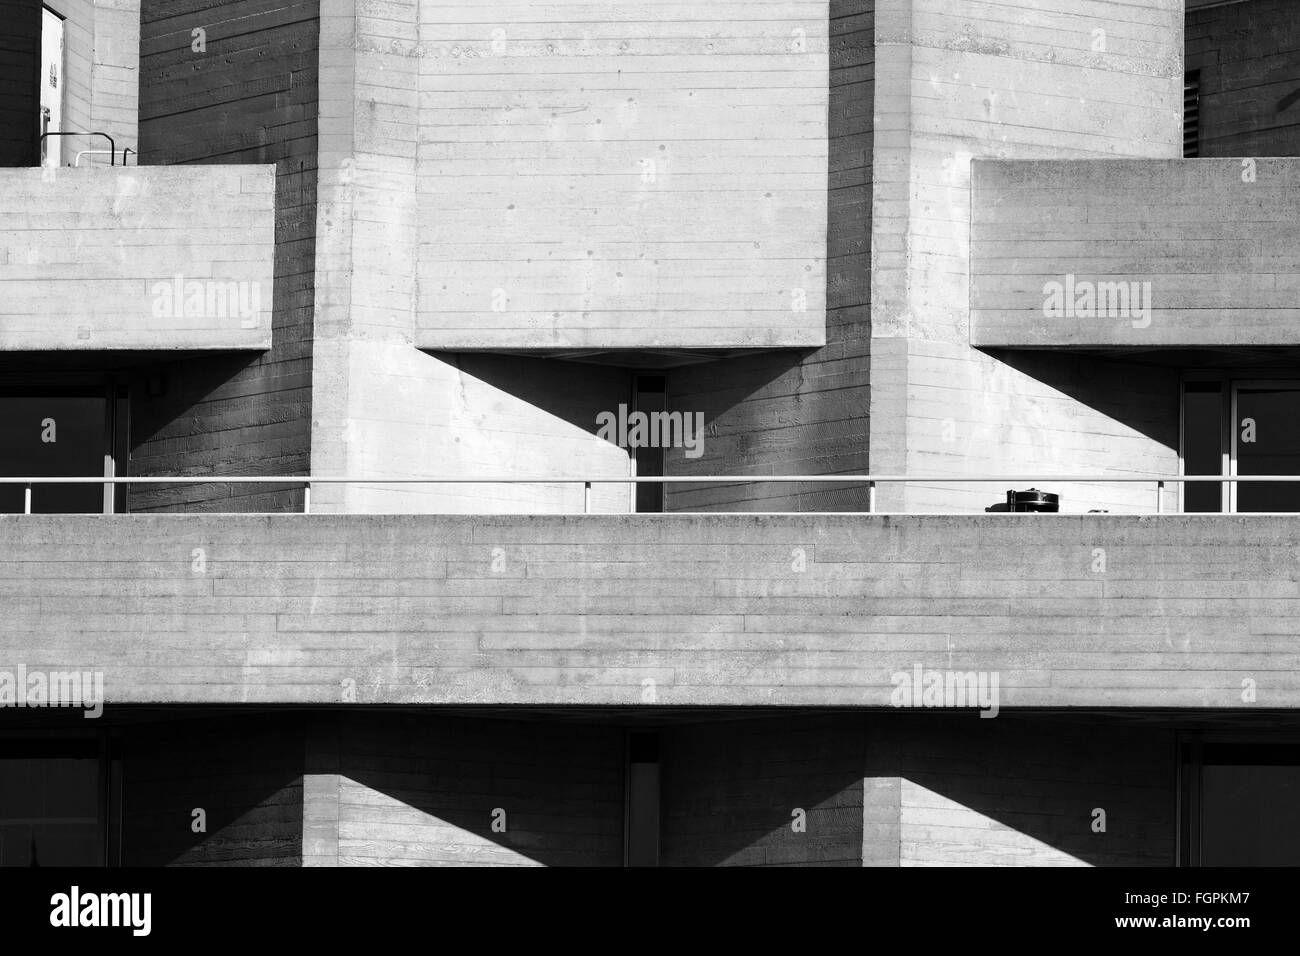 A view of part of The National Theatre, which is on the embankment of The River Thames in London, England. - Stock Image